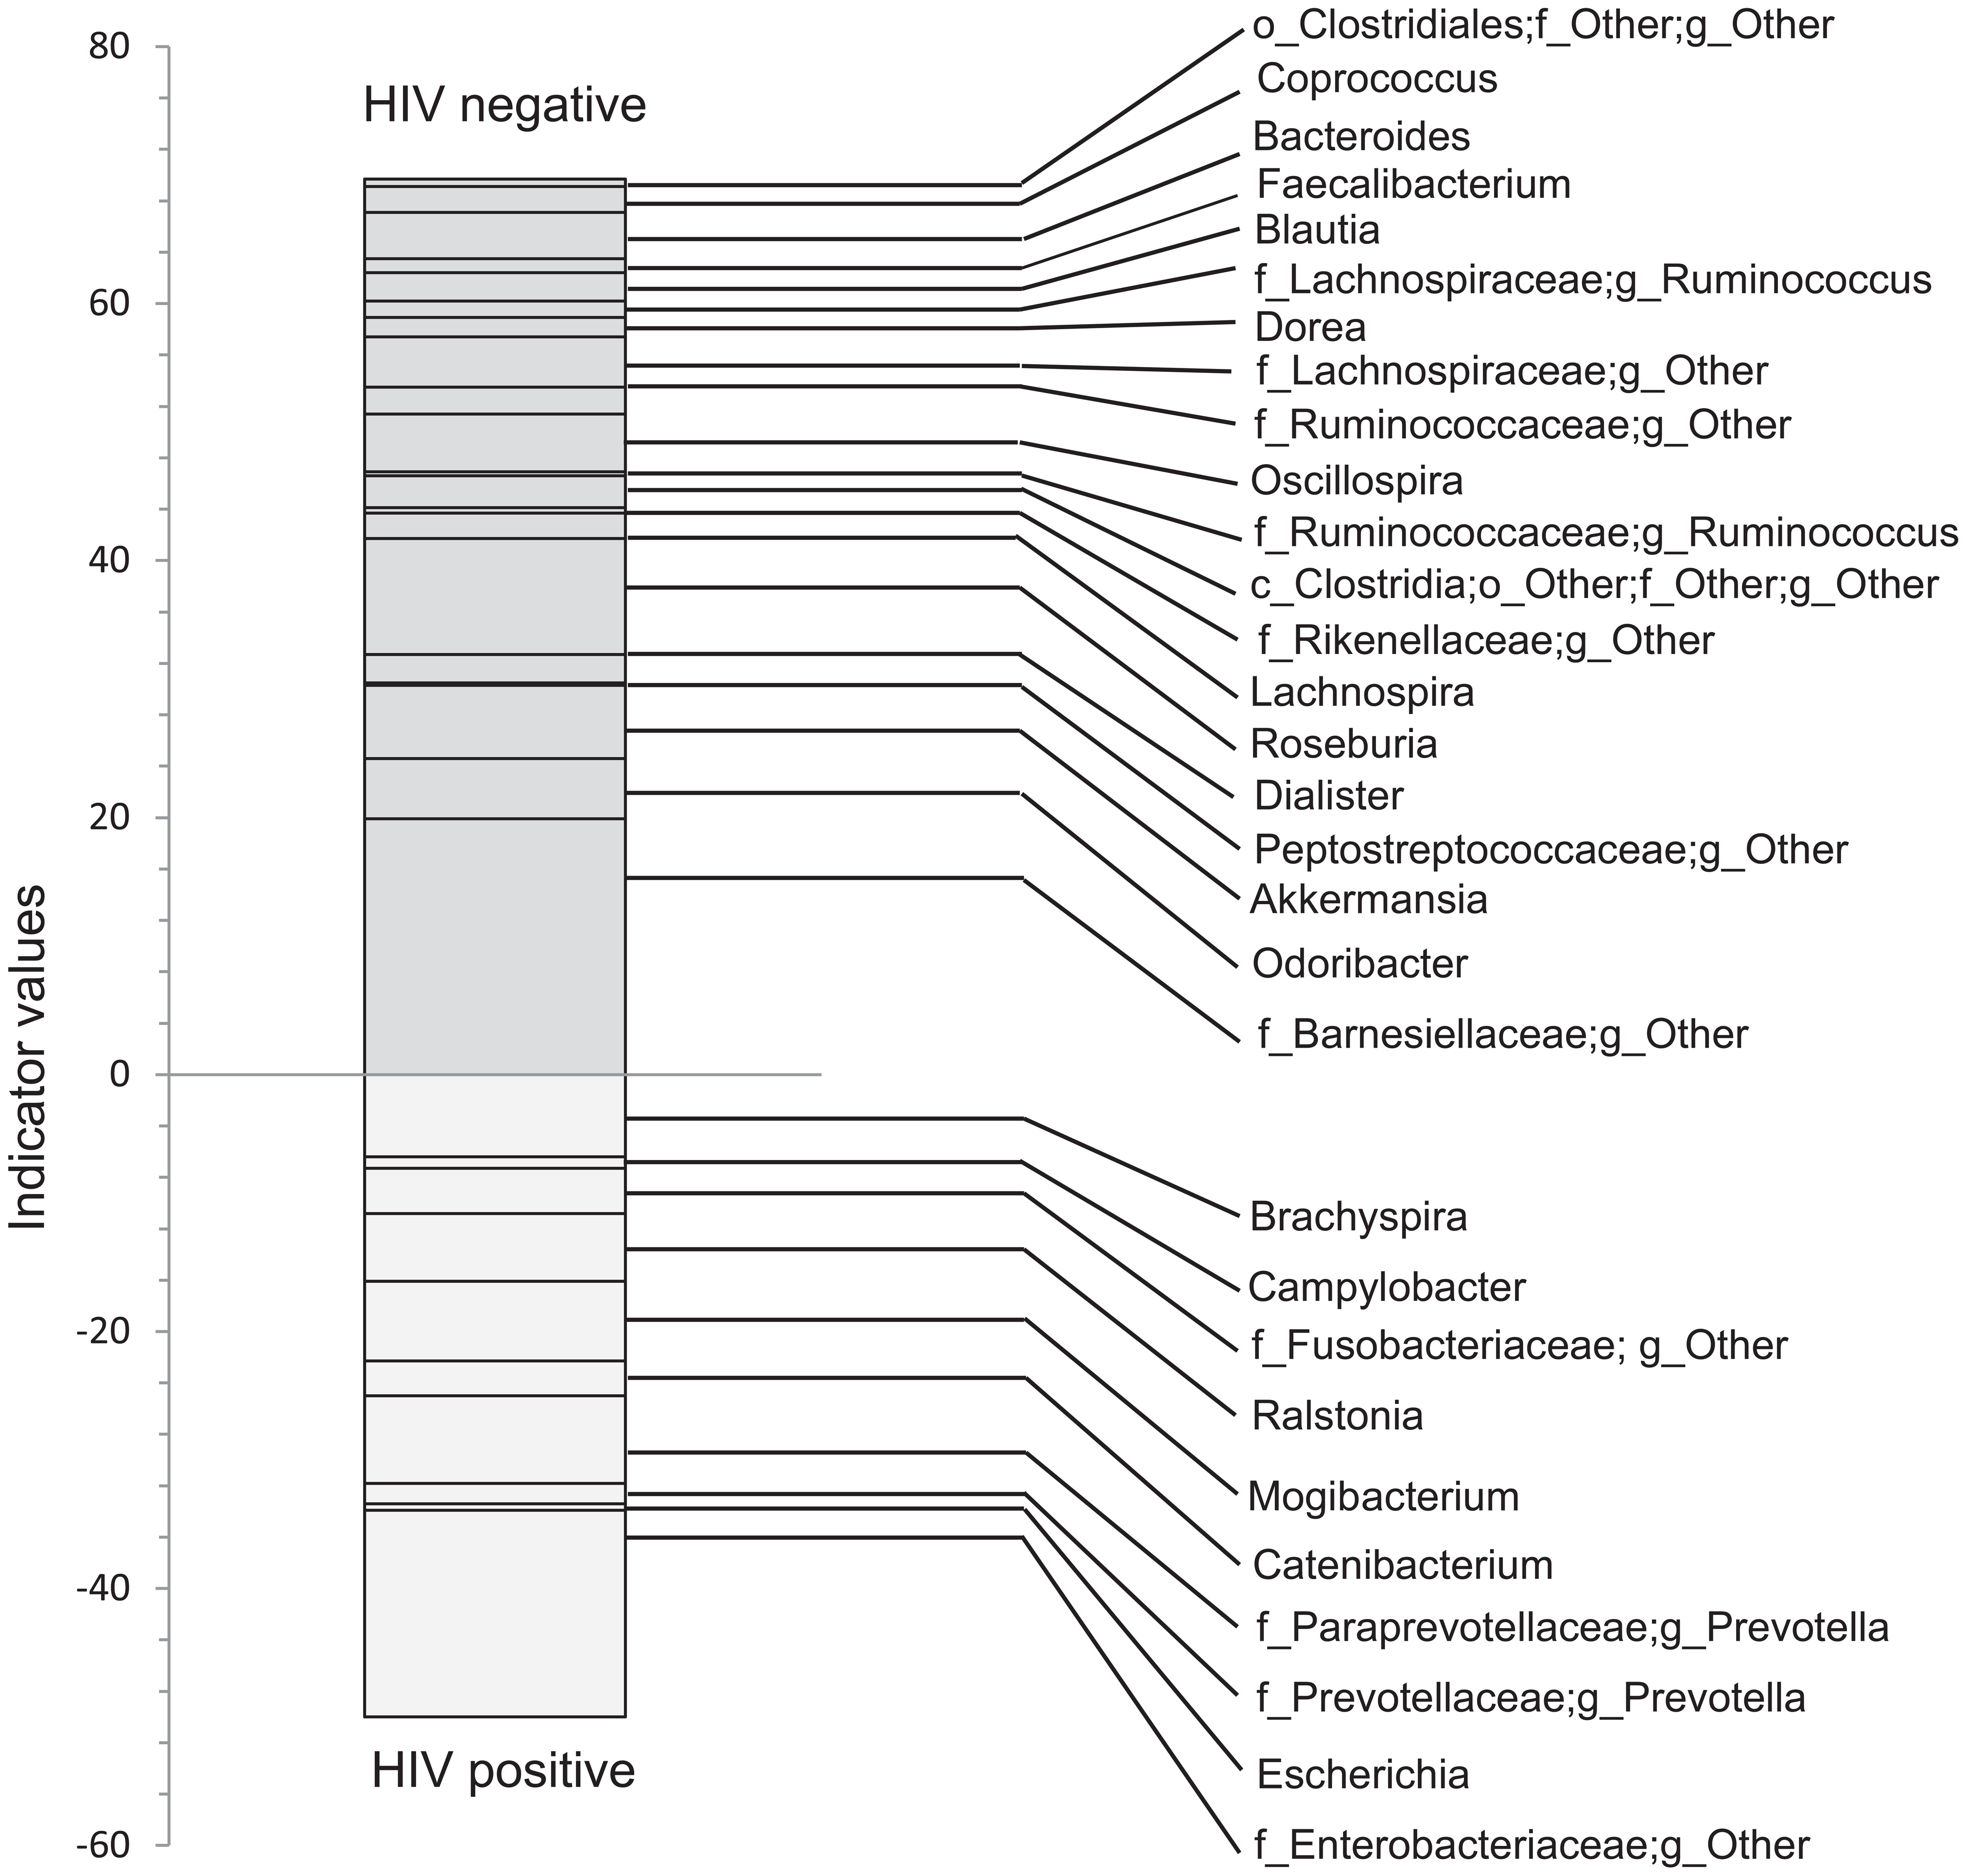 Indicator values for bacterial taxa, which are indicative of control or HIV samples.